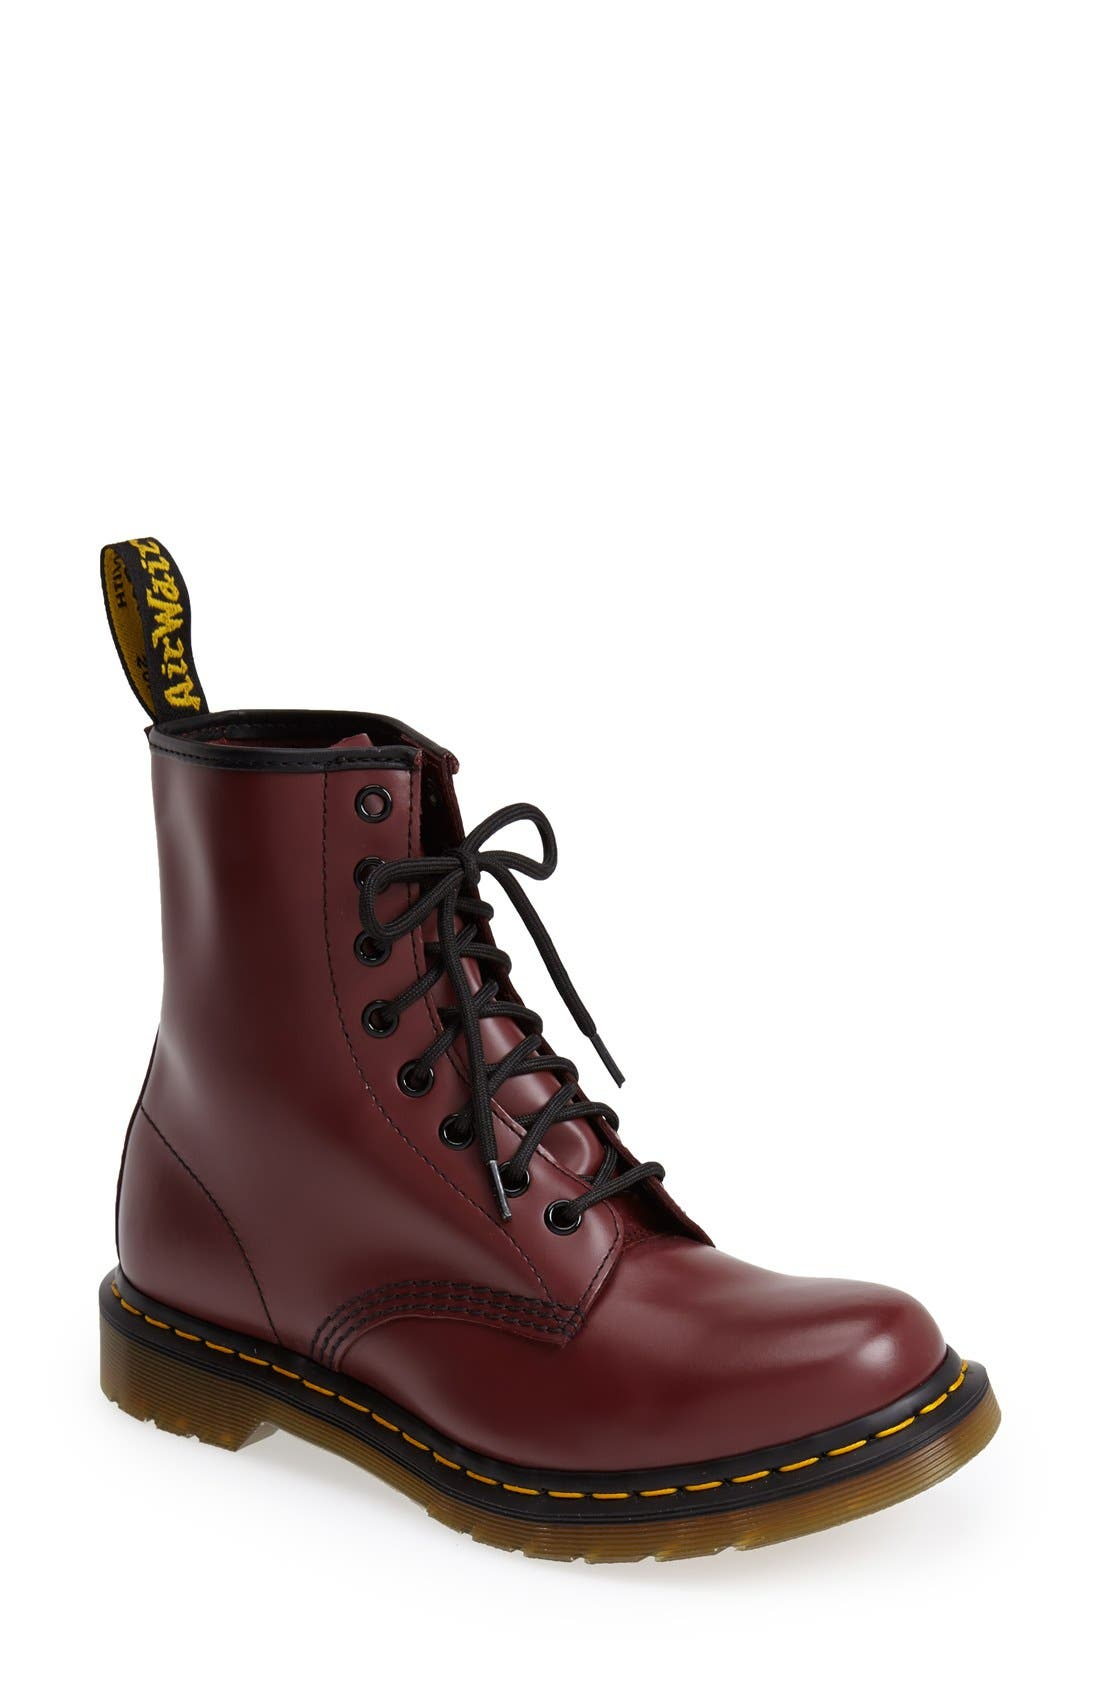 660db8ca7d09 Women s Ankle Boots